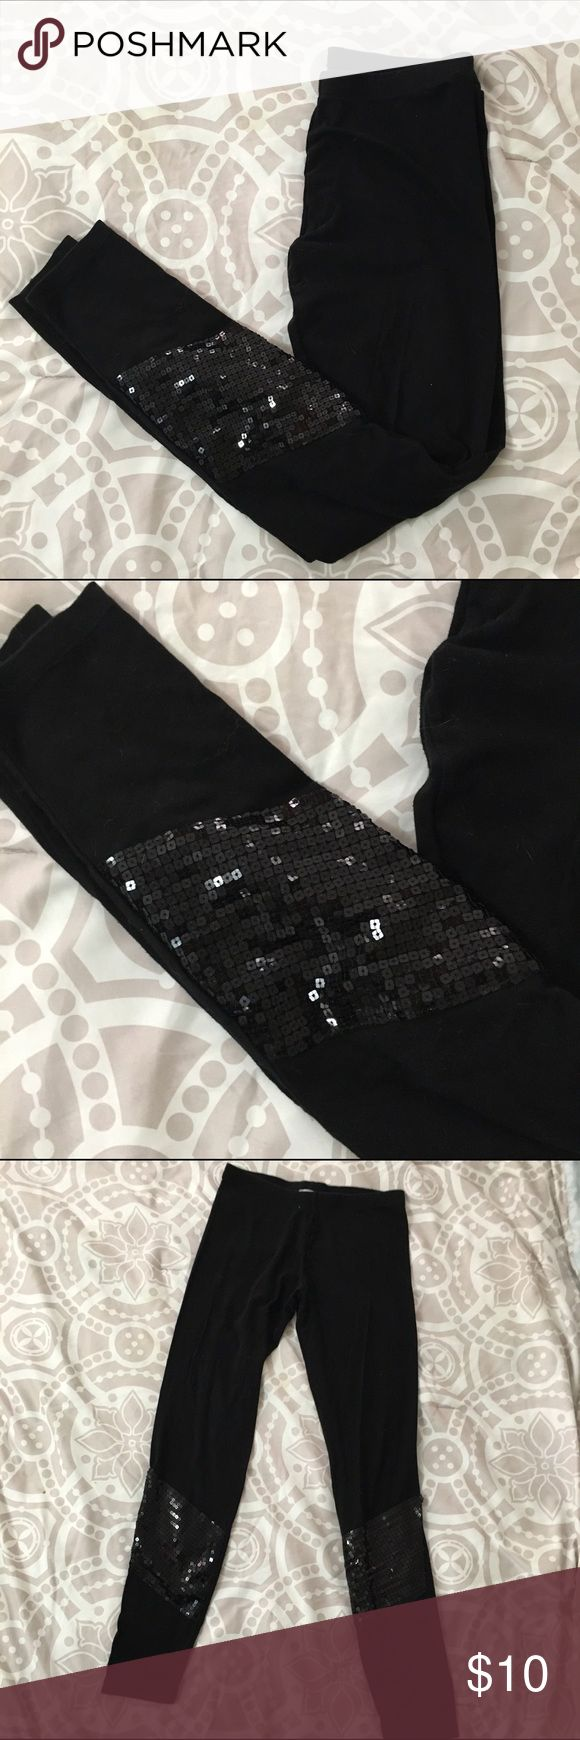 Sequin leggings 💕 Cotton leggings with square sequin application at the ankle. 95% cotton, 5% spandex. 🎀Make an offer. 🎈No trades. Charlotte Russe Pants Leggings